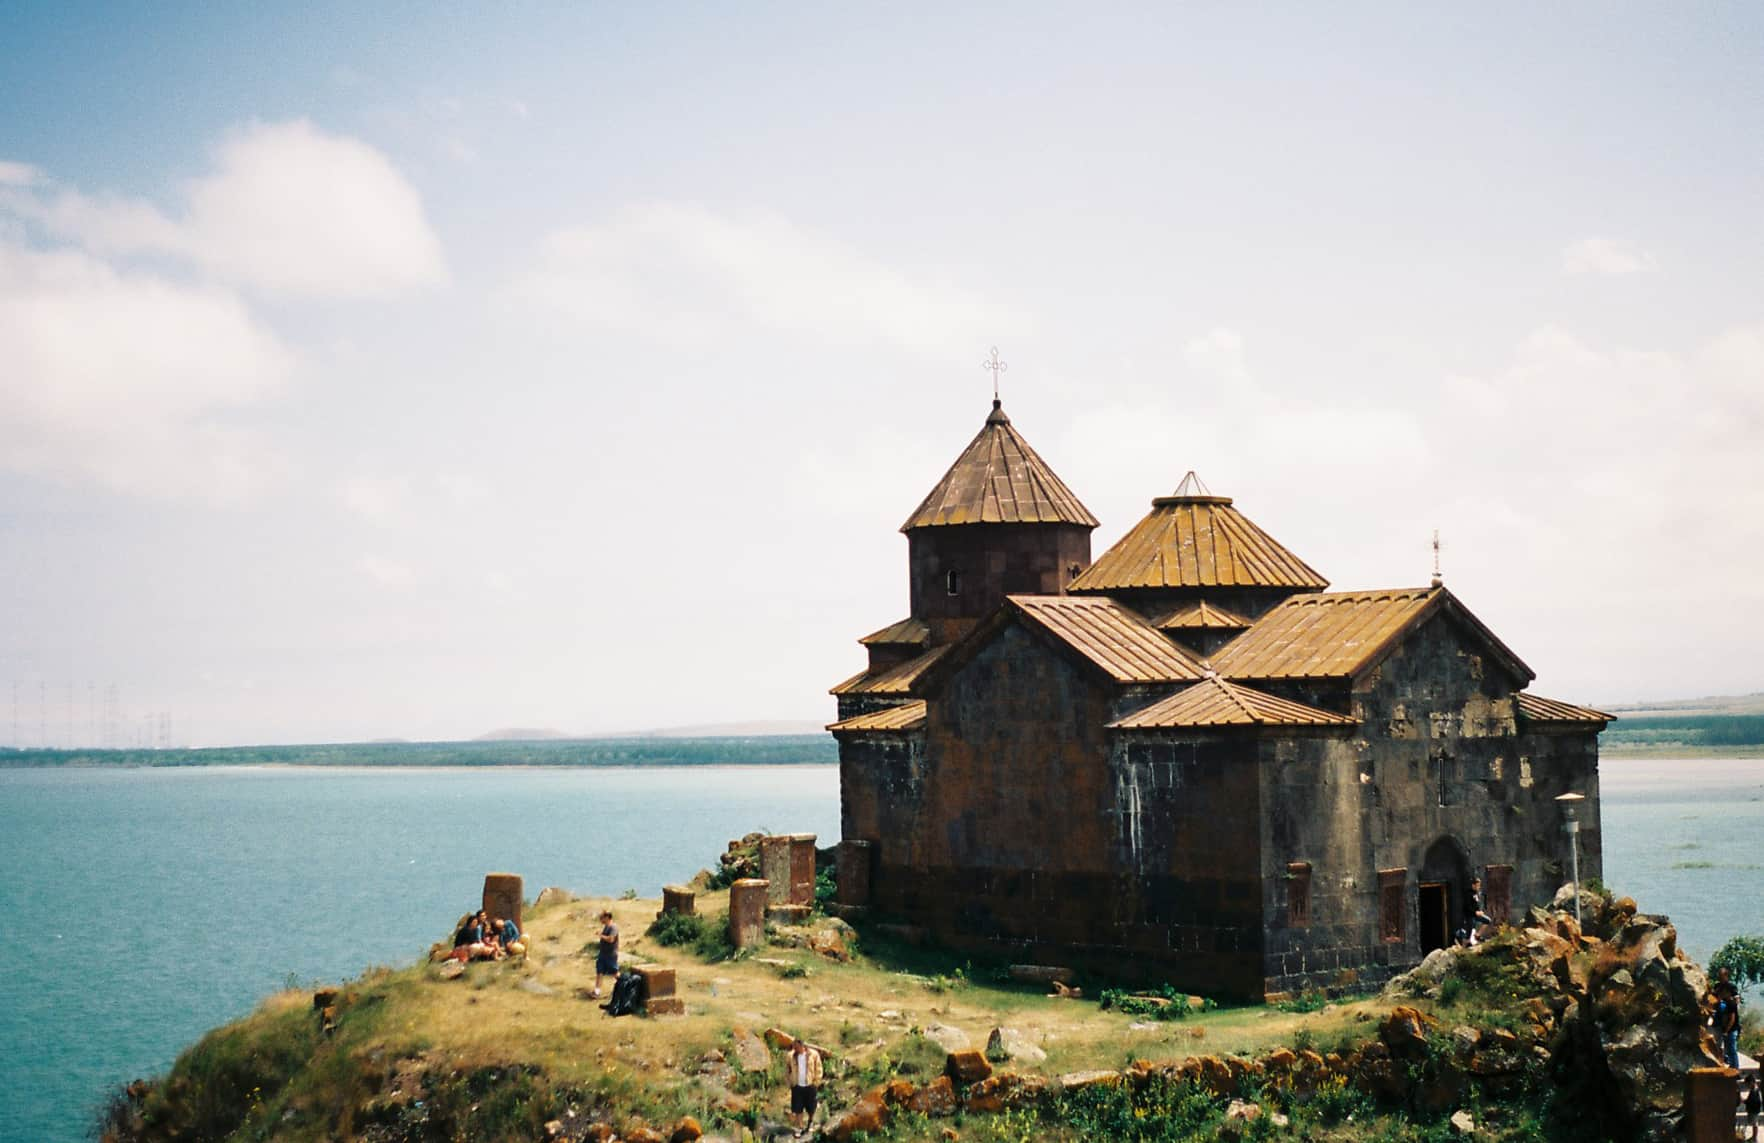 Exploring Armenia: Geghard, Garni, Hayravank, and Lake Sevan